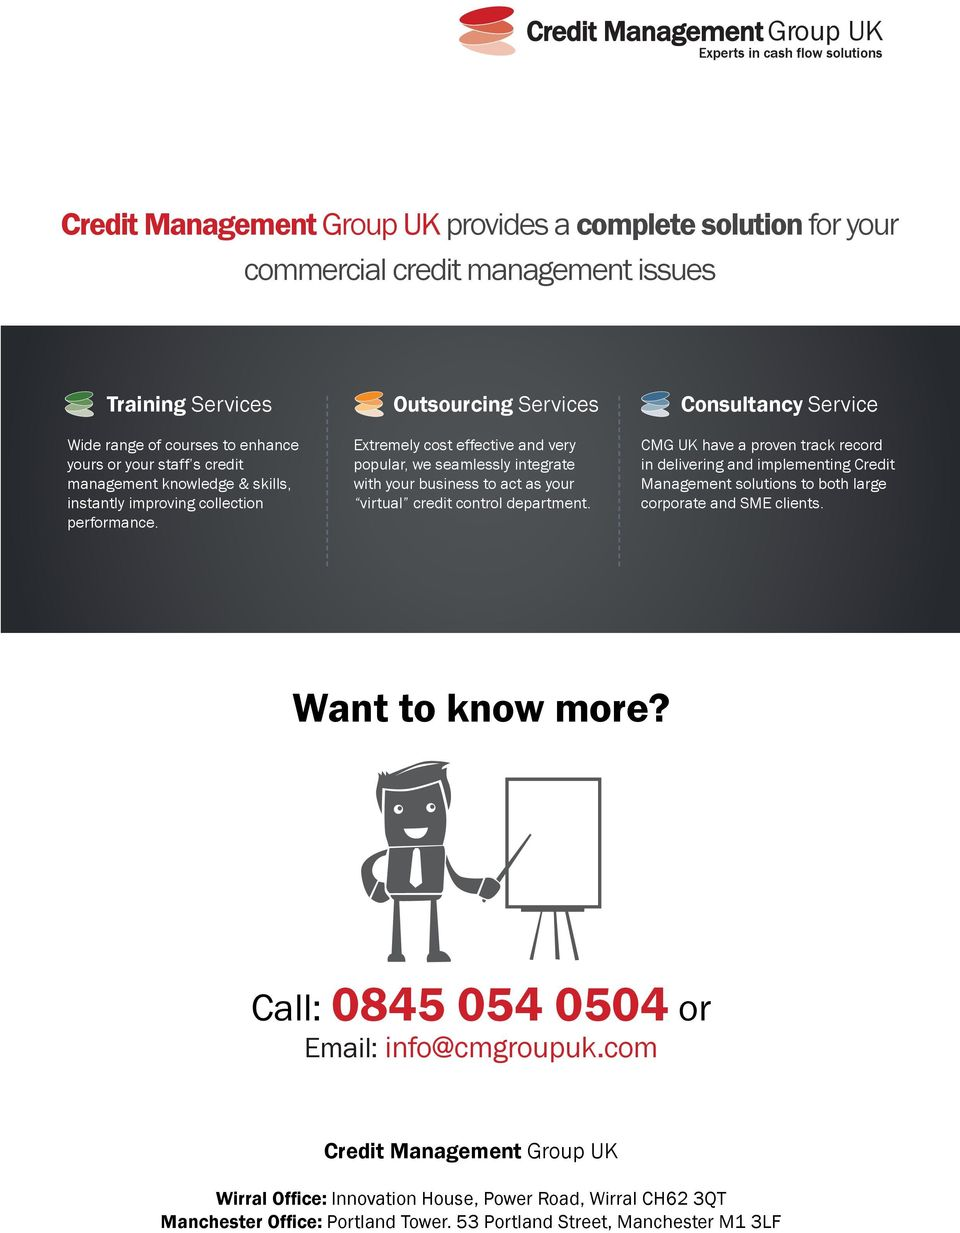 Outsourcing Services Extremely cost effective and very popular, we seamlessly integrate with your business to act as your virtual credit control